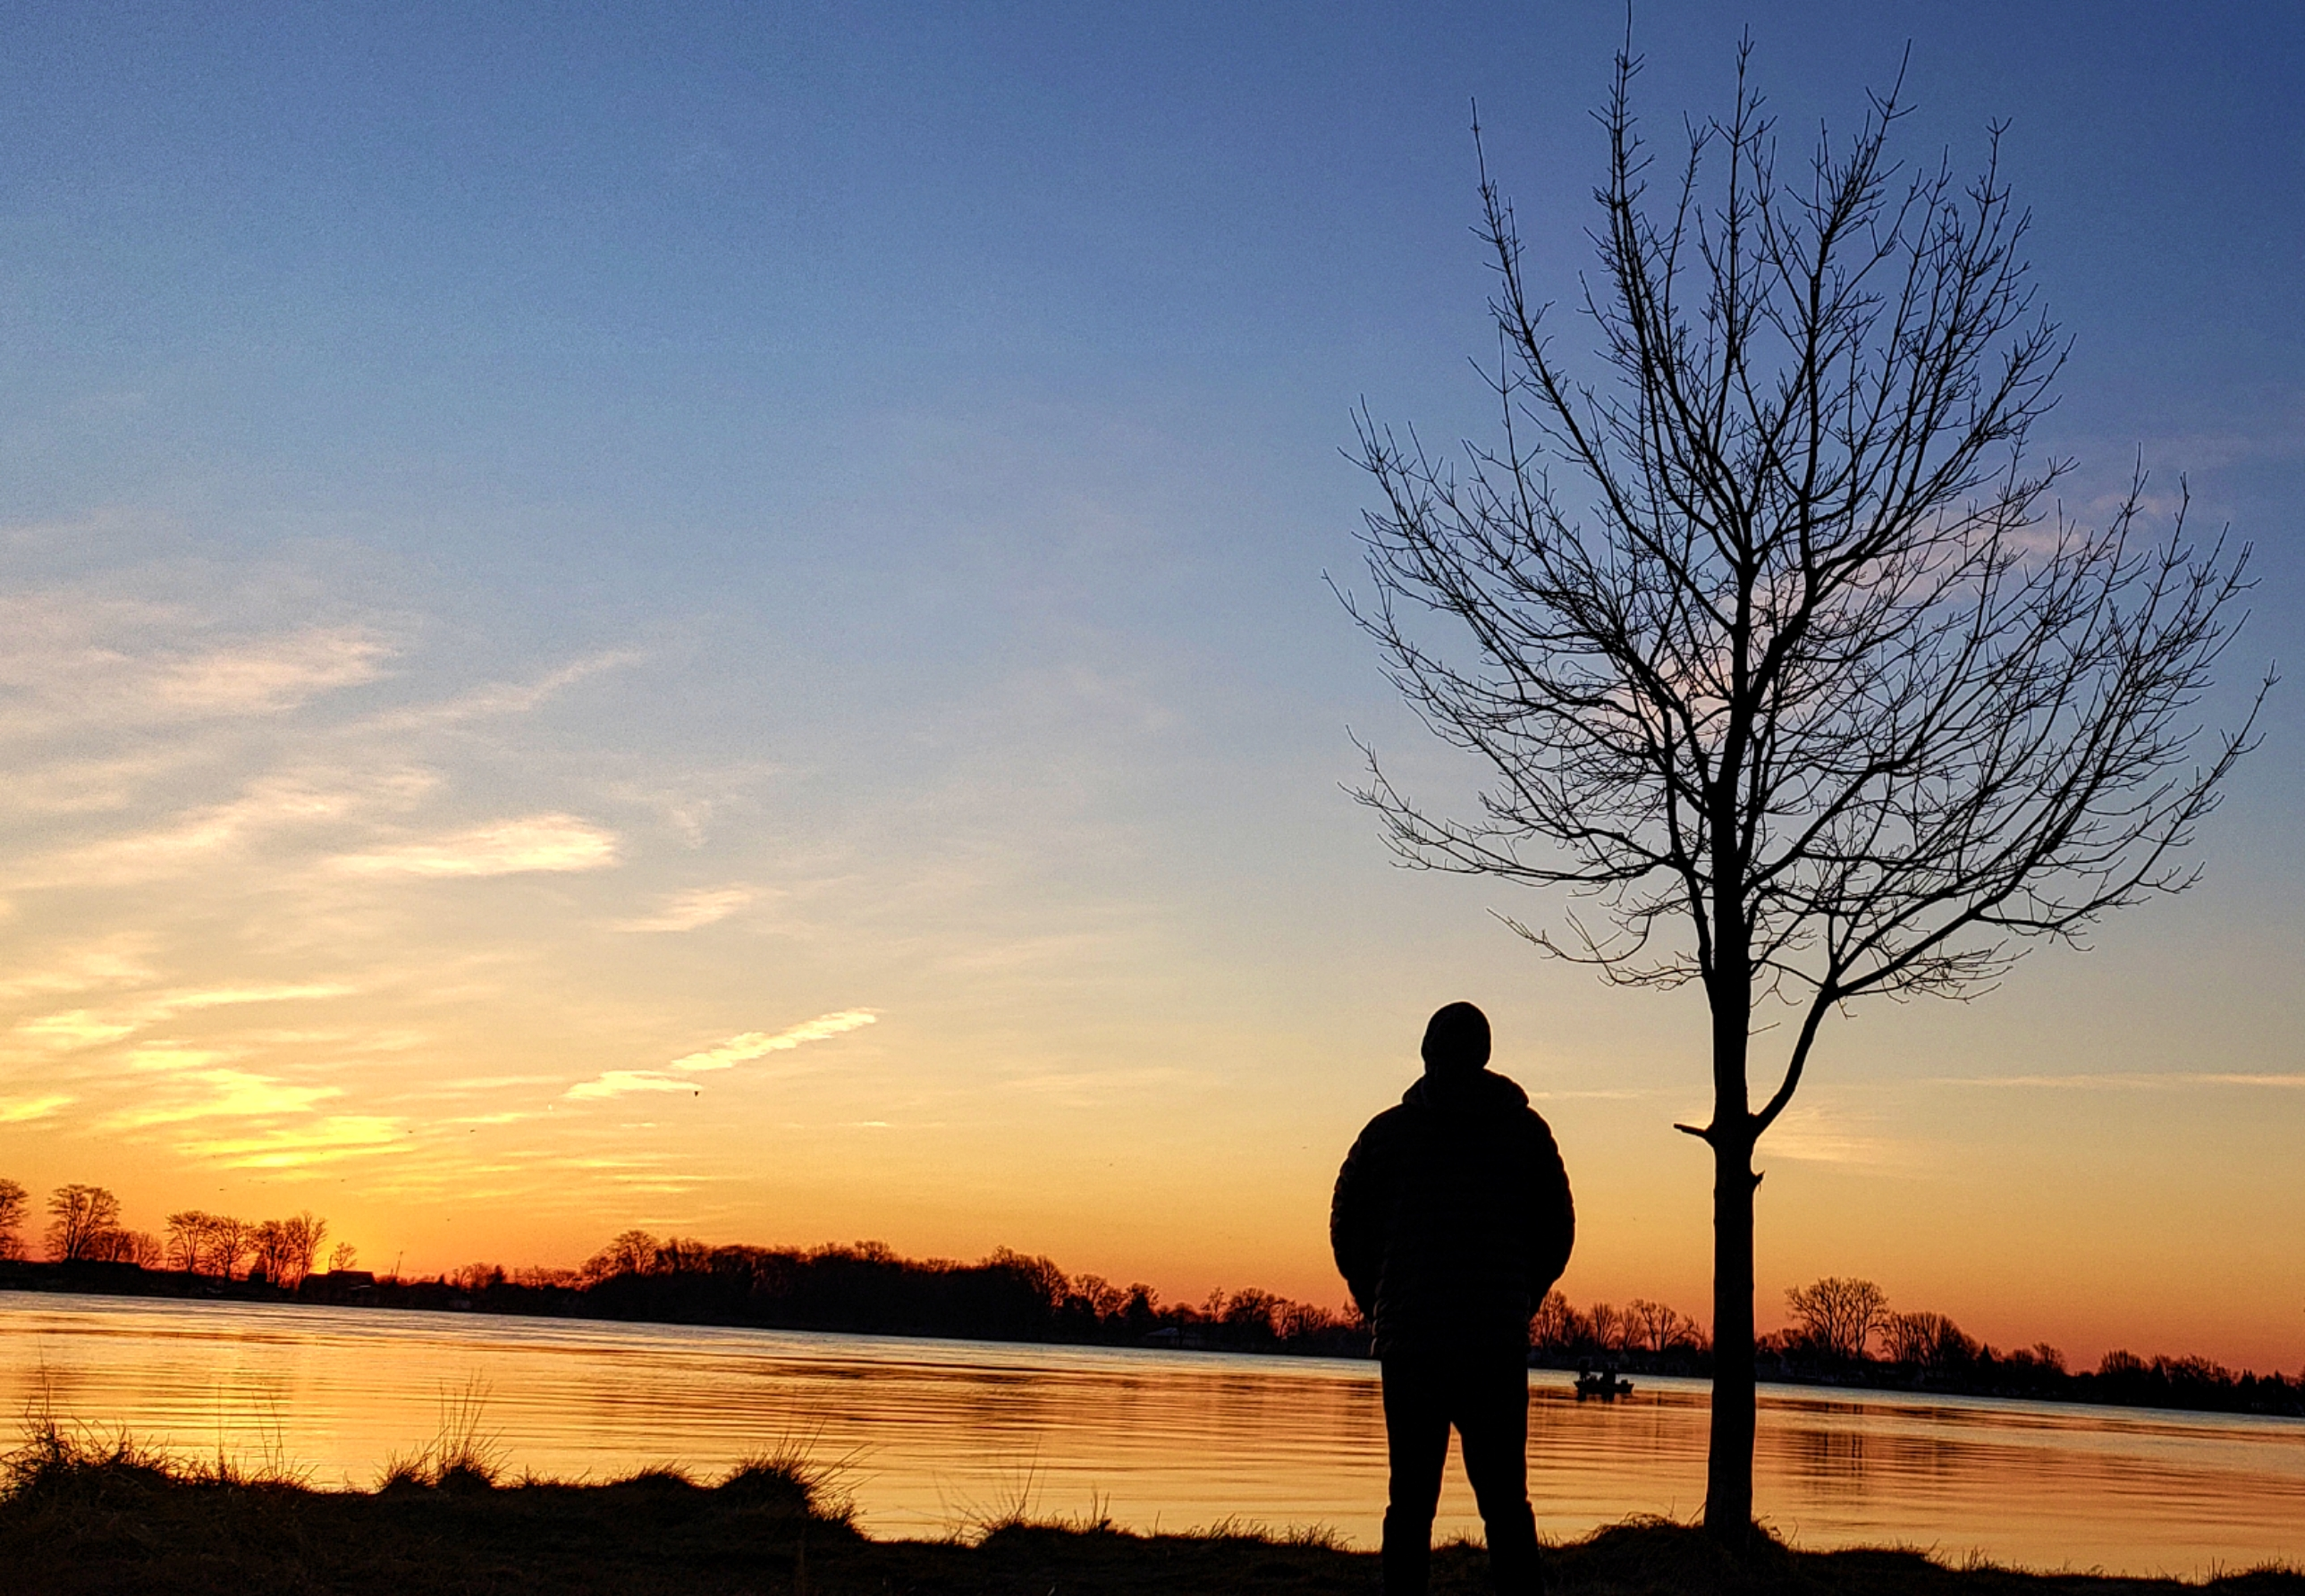 A silhouette of a man as he watcjrs the sun rise over the St.Clair River.